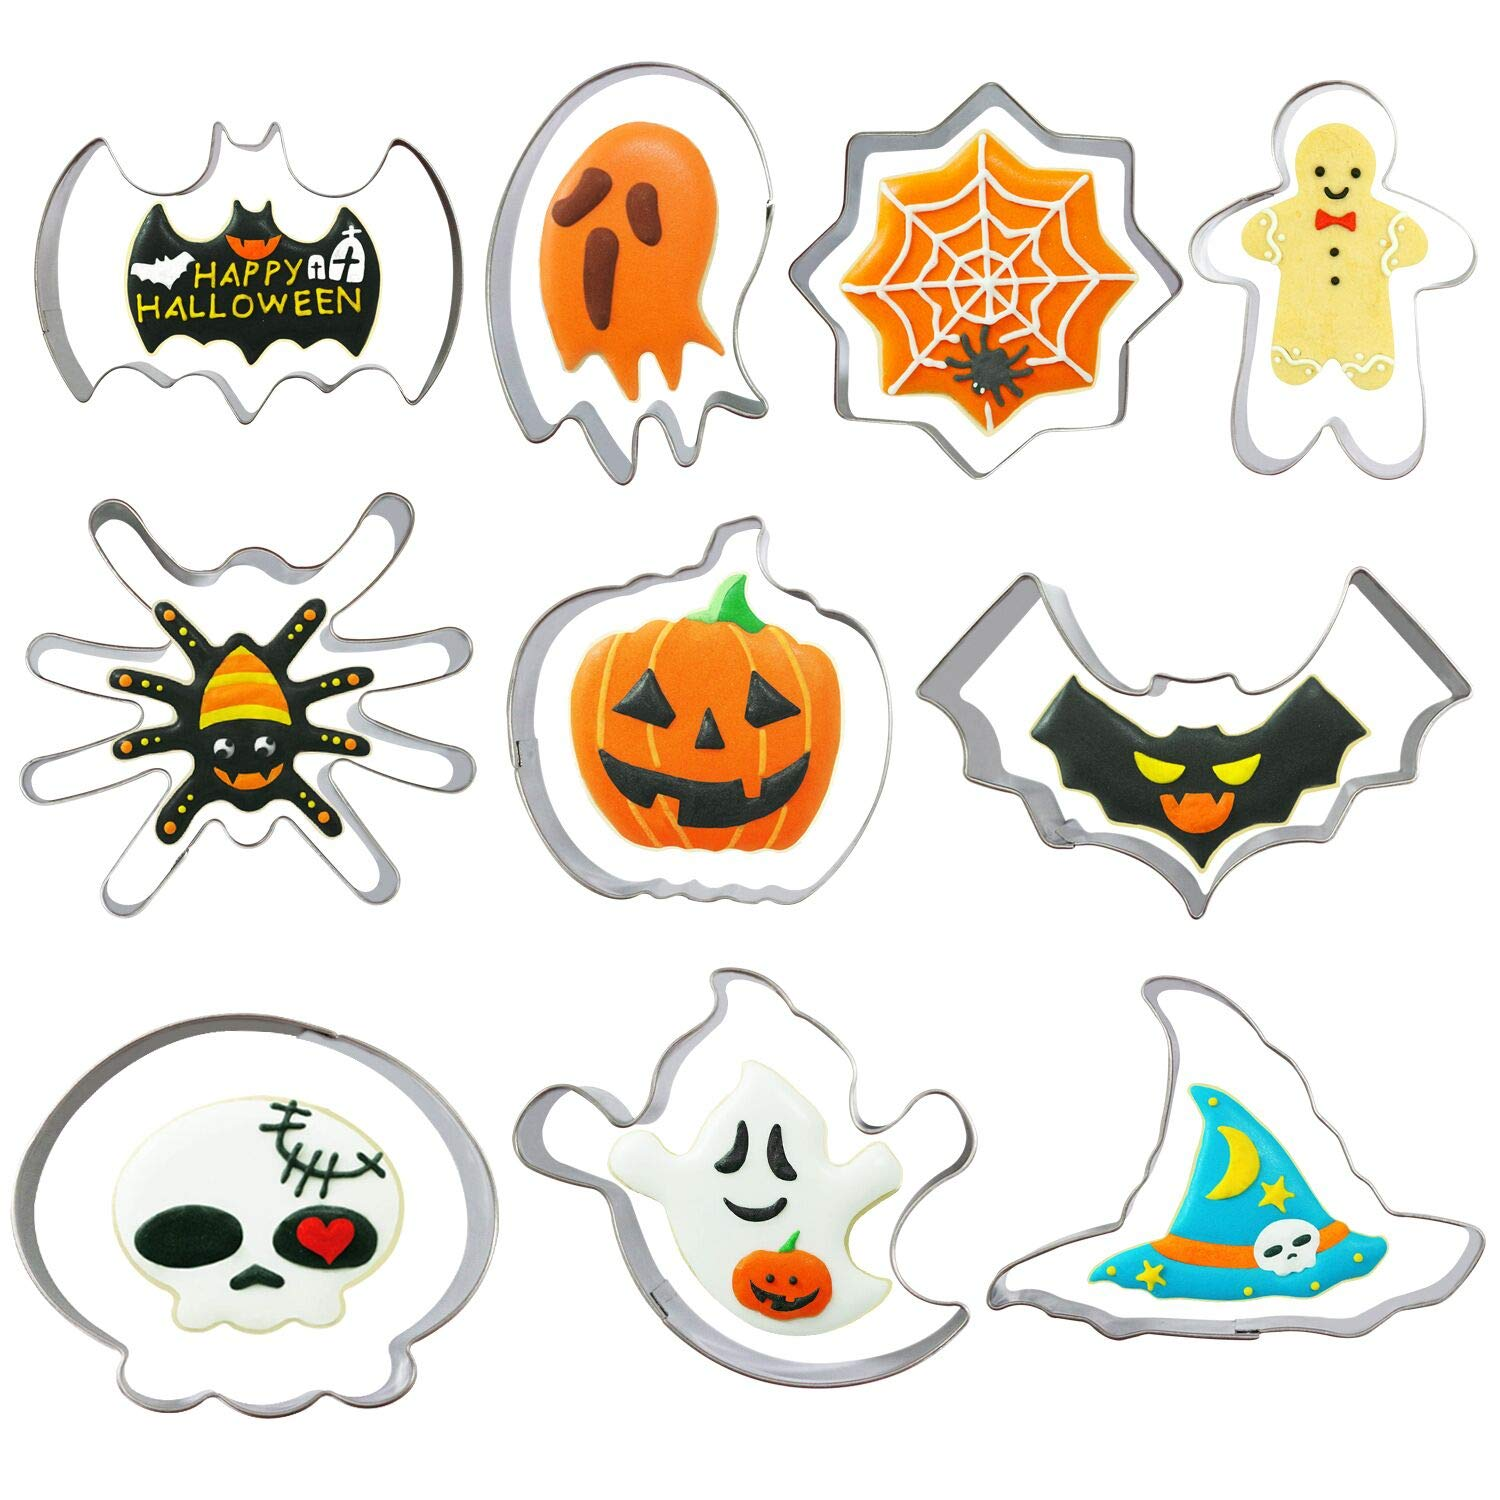 Halloween Cookie Cutters Set - 10 Piece - Pumpkin, Bat, Ghost, Witch Hat, Spider, Cobweb, Skull and Skeleton Shape